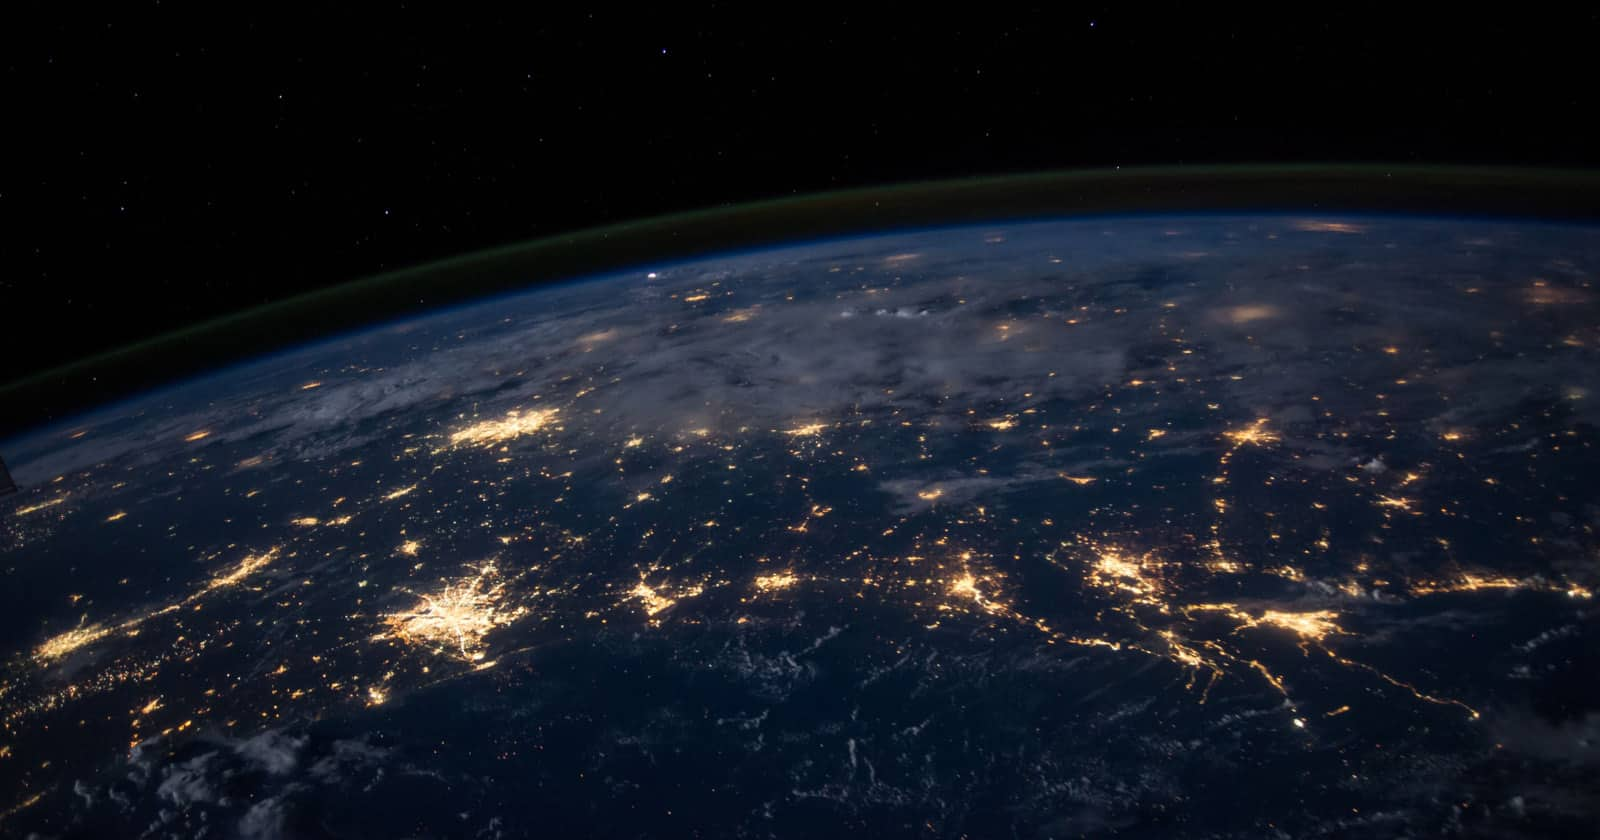 A photo of the earth at night from space by Nasa